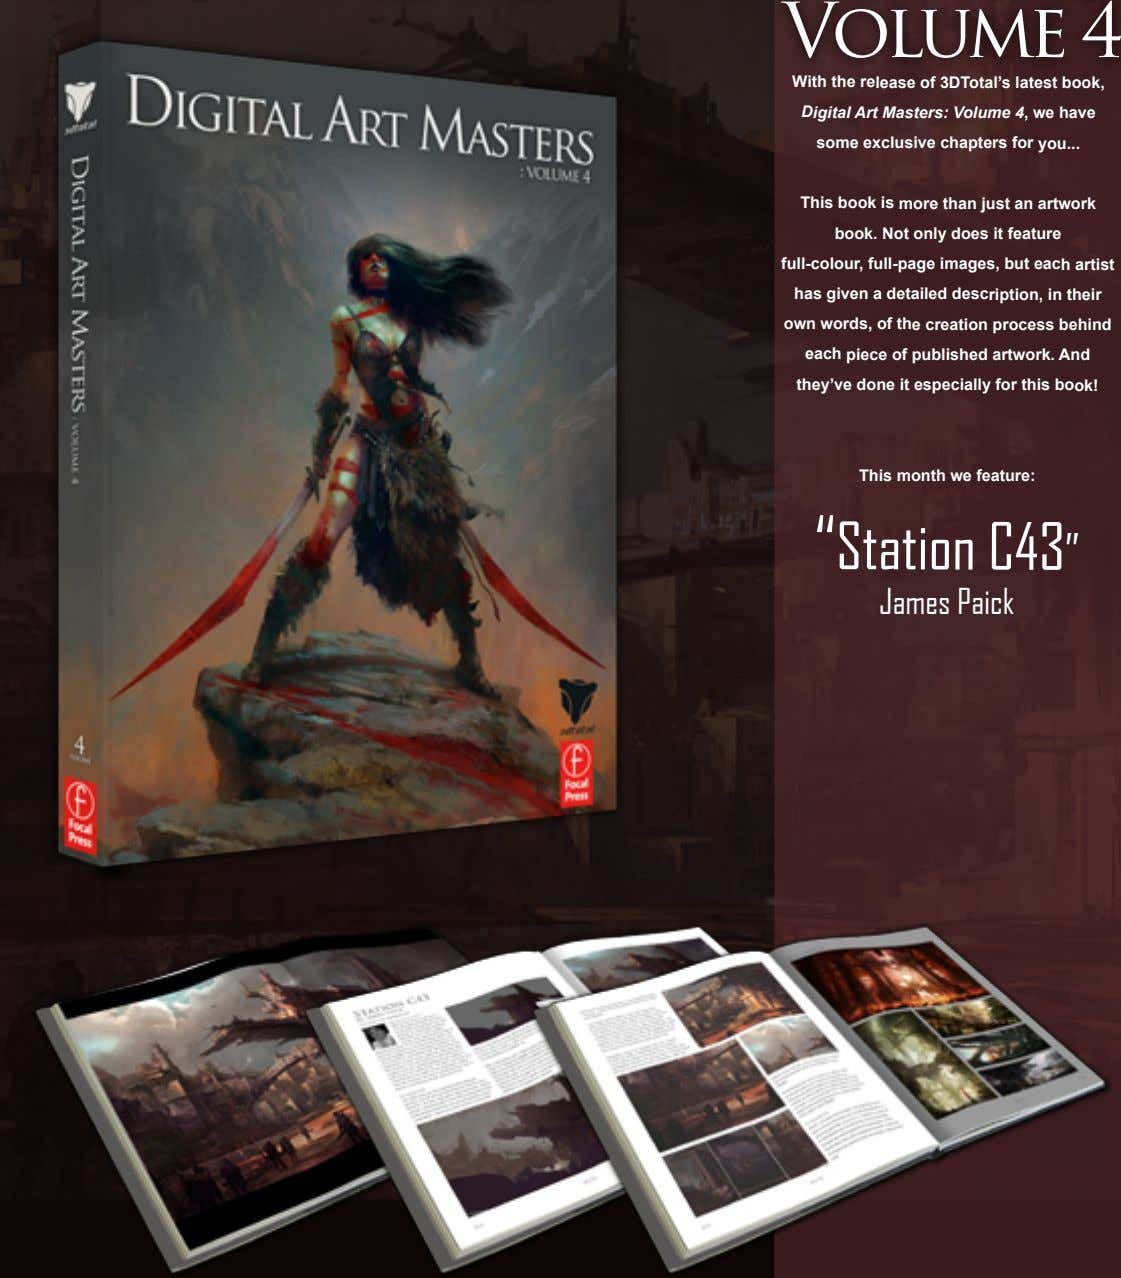 With the release of 3DTotal's latest book, Digital Art Masters: Volume 4, we have some